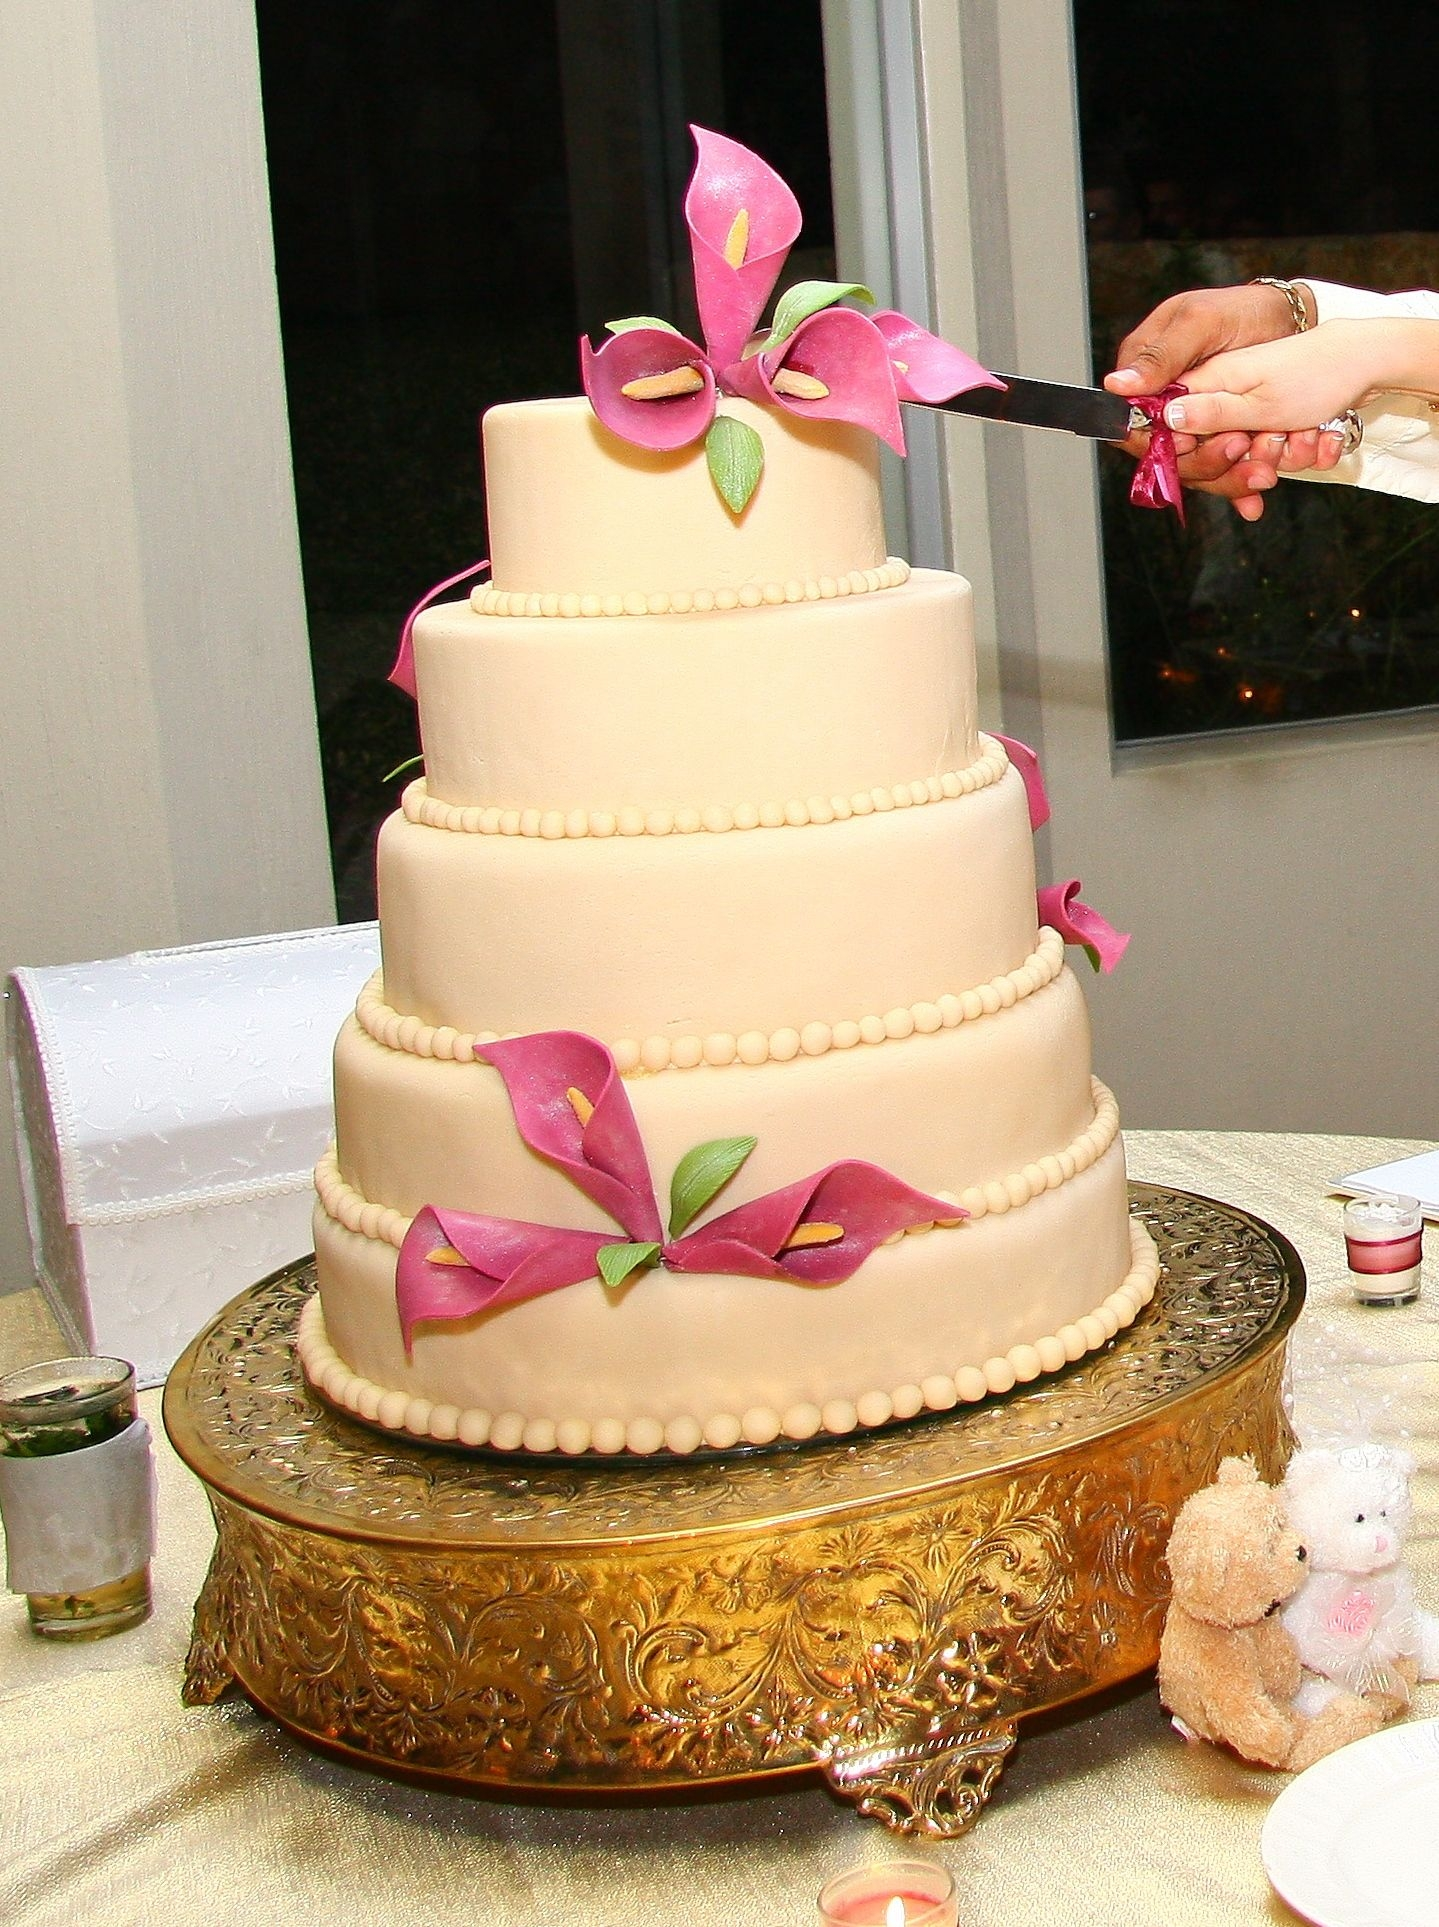 For Sale: Gold Plated Cake Base — The Knot